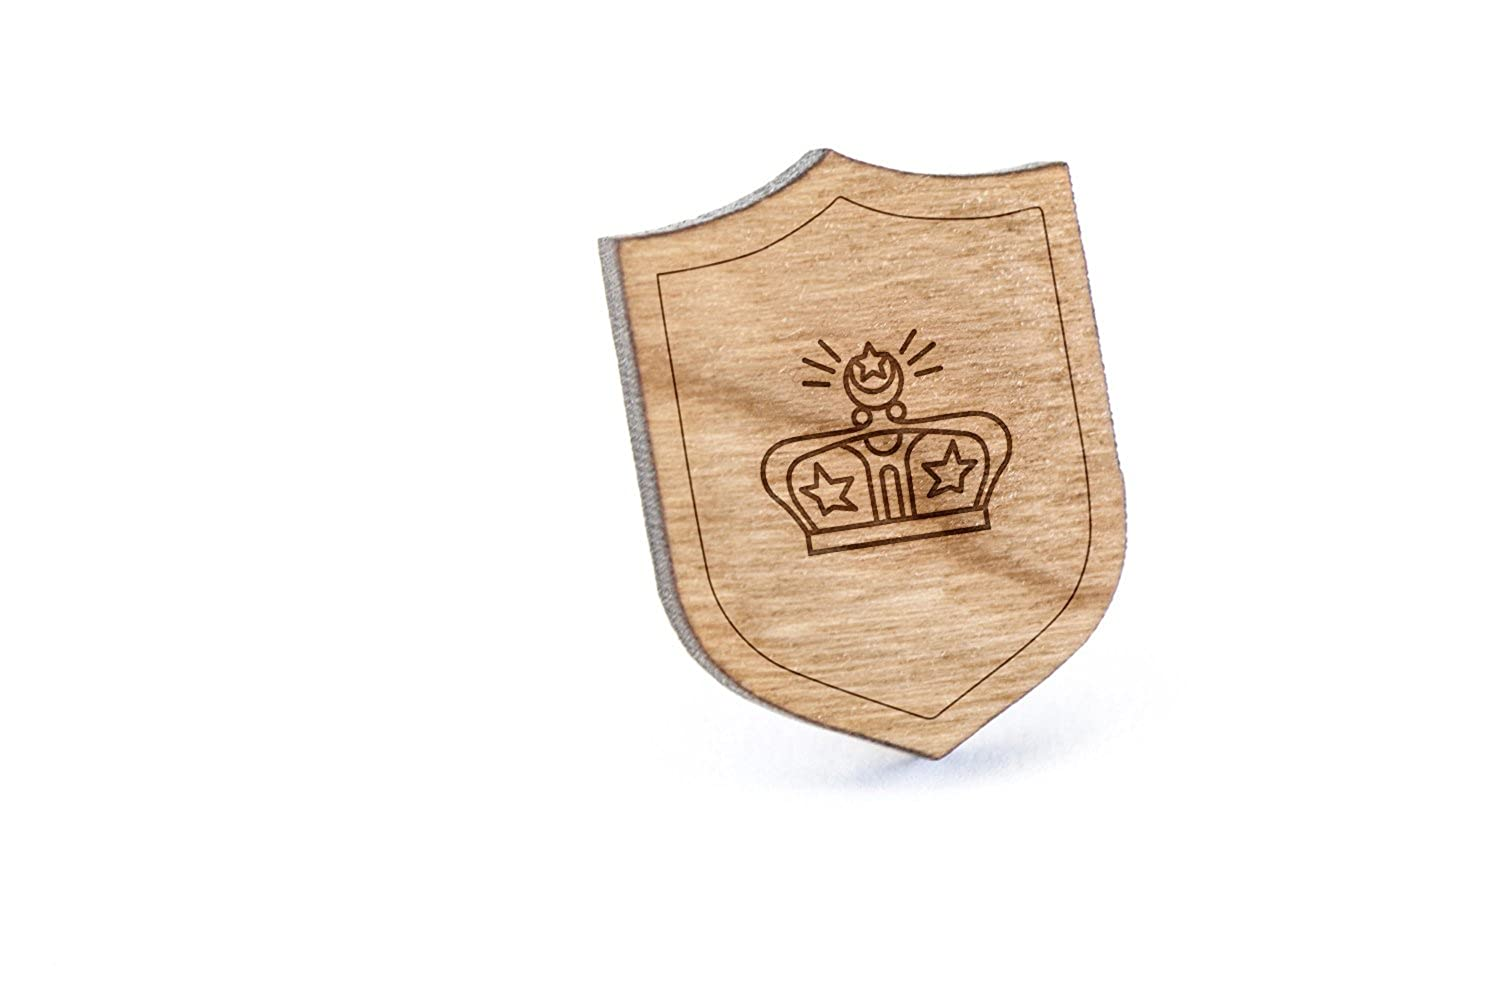 Czar Lapel Pin, Wooden Pin Wooden Accessories Company czar-pin